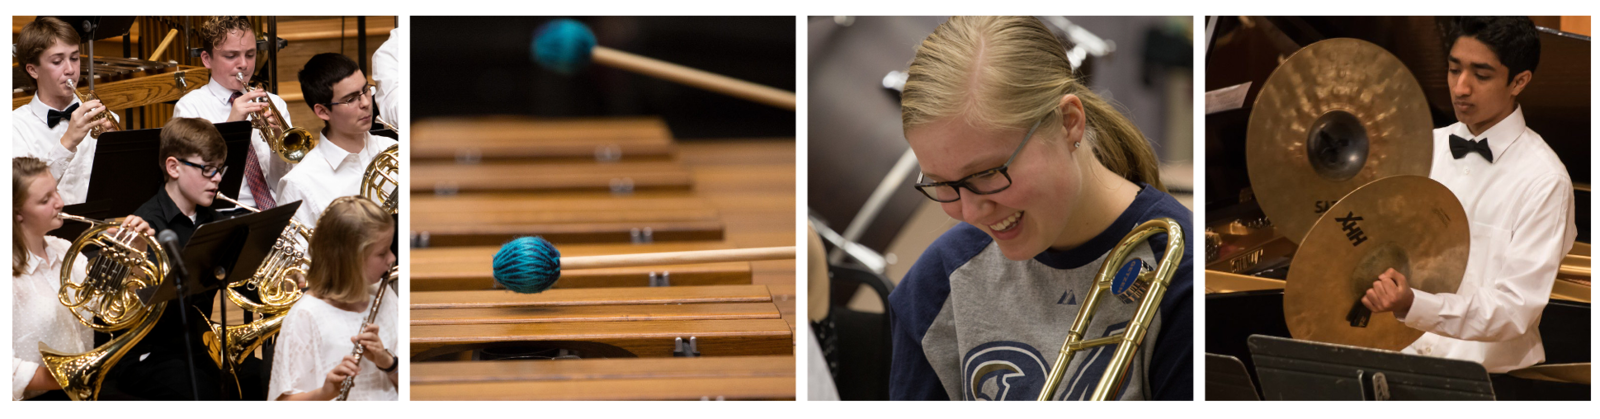 Four photos: Symphonic Band playing onstage, a closeup of mallets on a marimba, a trombone student smiling during rehearsal, a closeup of a student playing the cymbals during a concert